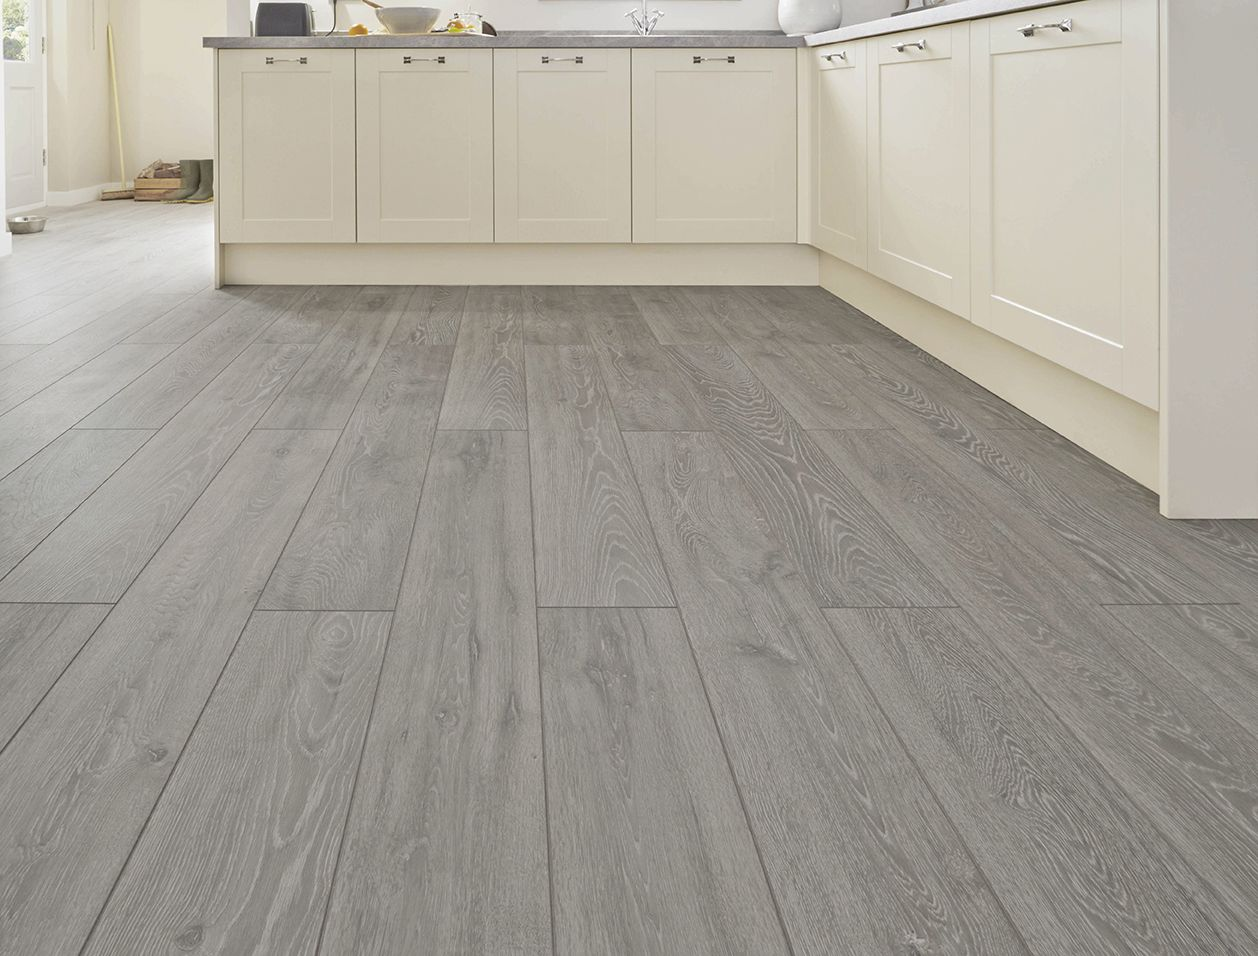 This Professional V Groove Light Grey Oak Laminate Flooring Goes In Hand Perfectly With Our Bu Light Grey Oak Flooring Grey Wooden Floor Grey Laminate Flooring